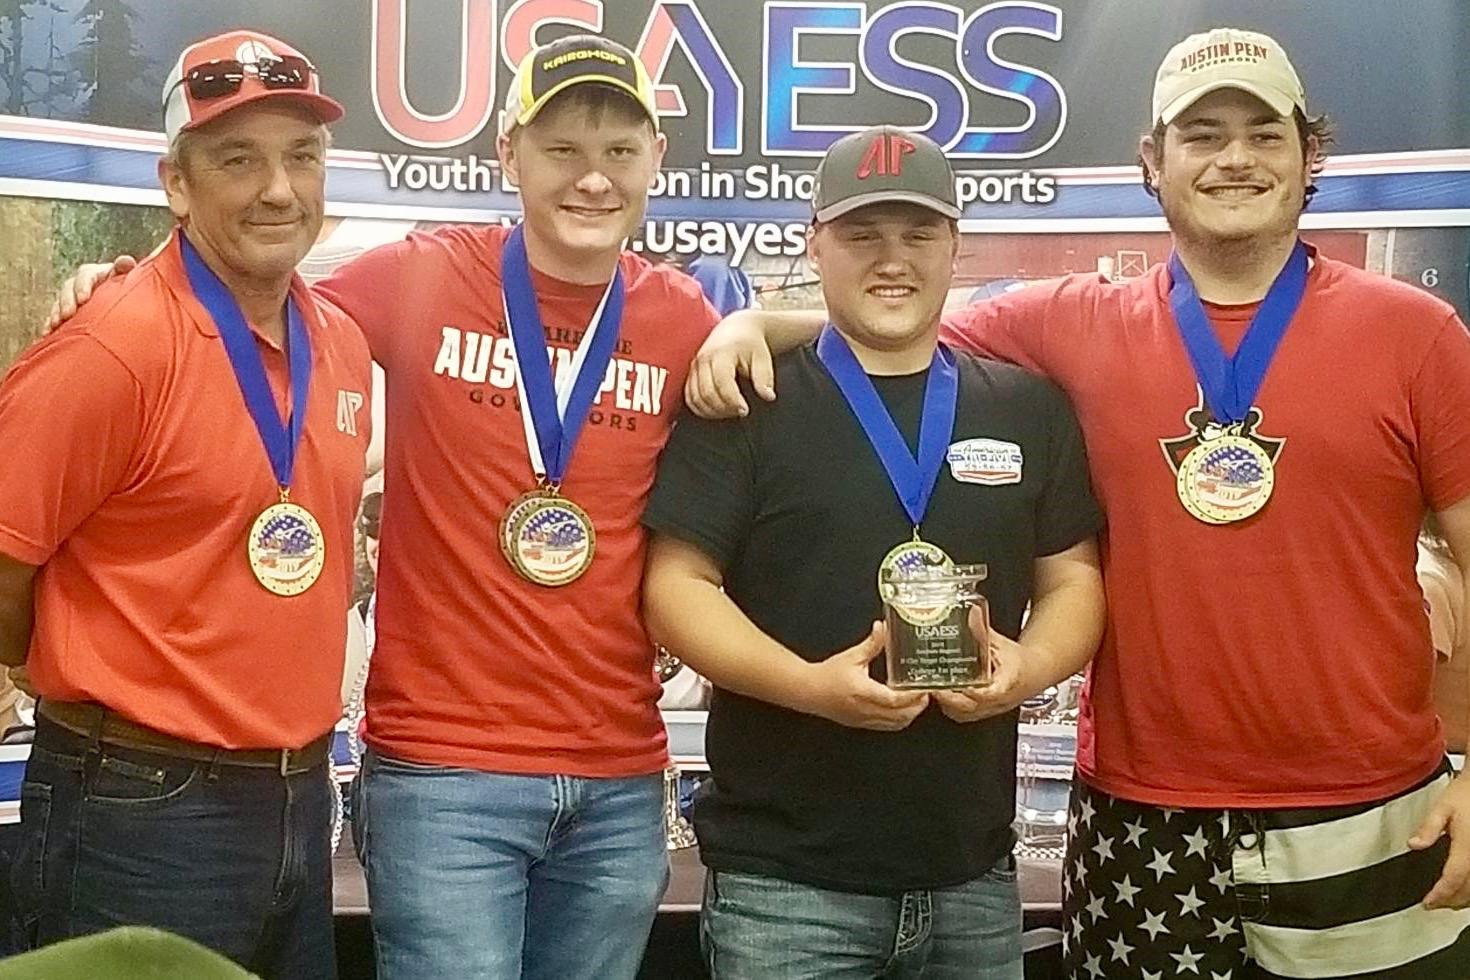 Clay Target Club best overall team at southern regional championship